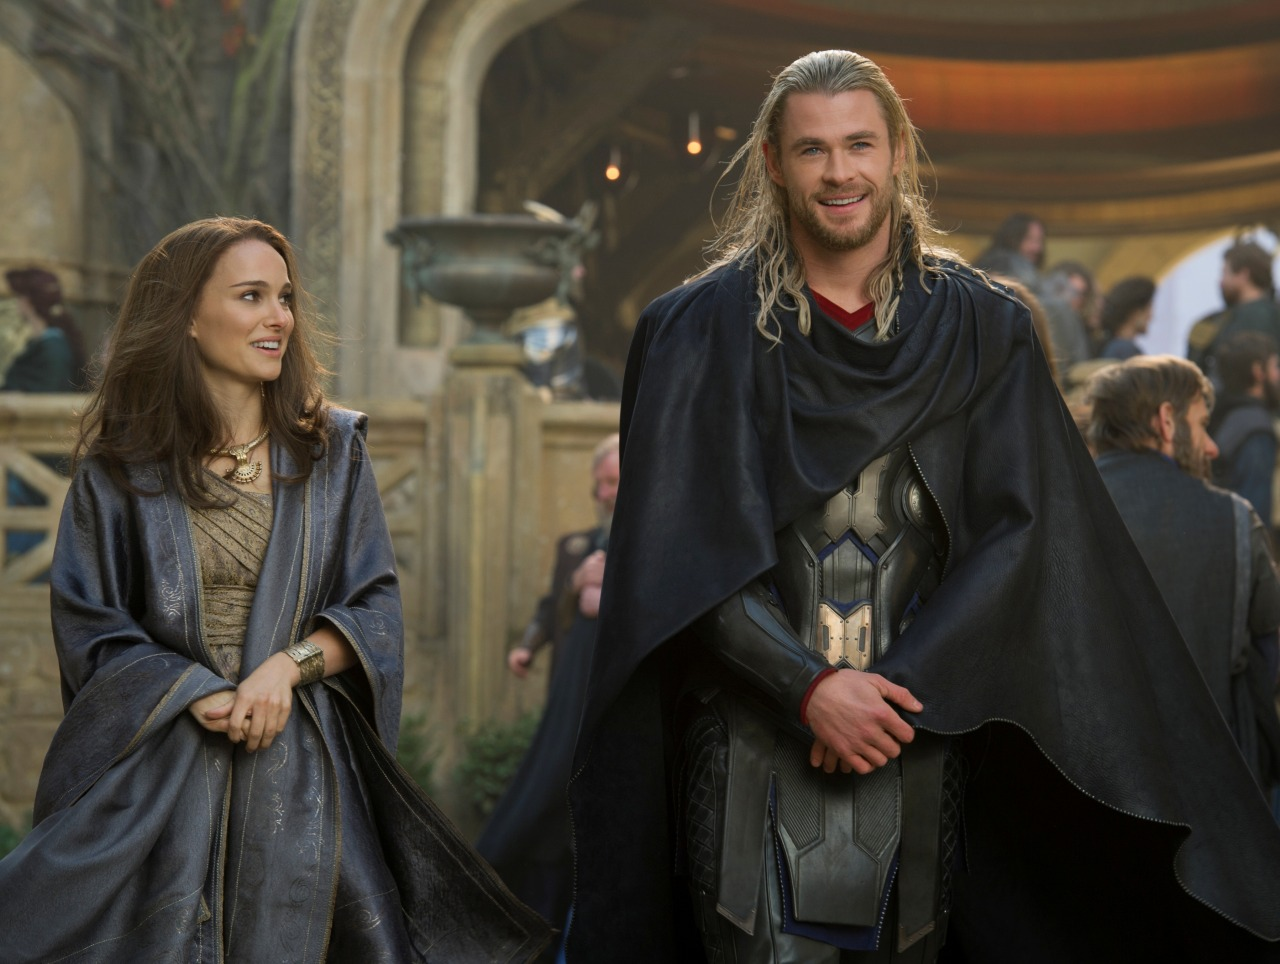 "gingerhaze:  destronomics:  edenliaothewomb:  Natalie Portman as Jane Foster and Chris Hemsworth as Thor in ""Thor: The Dark World"", 2013. (click the image for EXTREMELY high-res photo.)  WHOLE STUPID HEART  EEEE  Holy shitlicking mother of god HIDDLESTON AND ECCLESTON IN THE SAME MOVIE AS CHRIS HEMSWORTH'S GODLY ABS. November 8, people!"